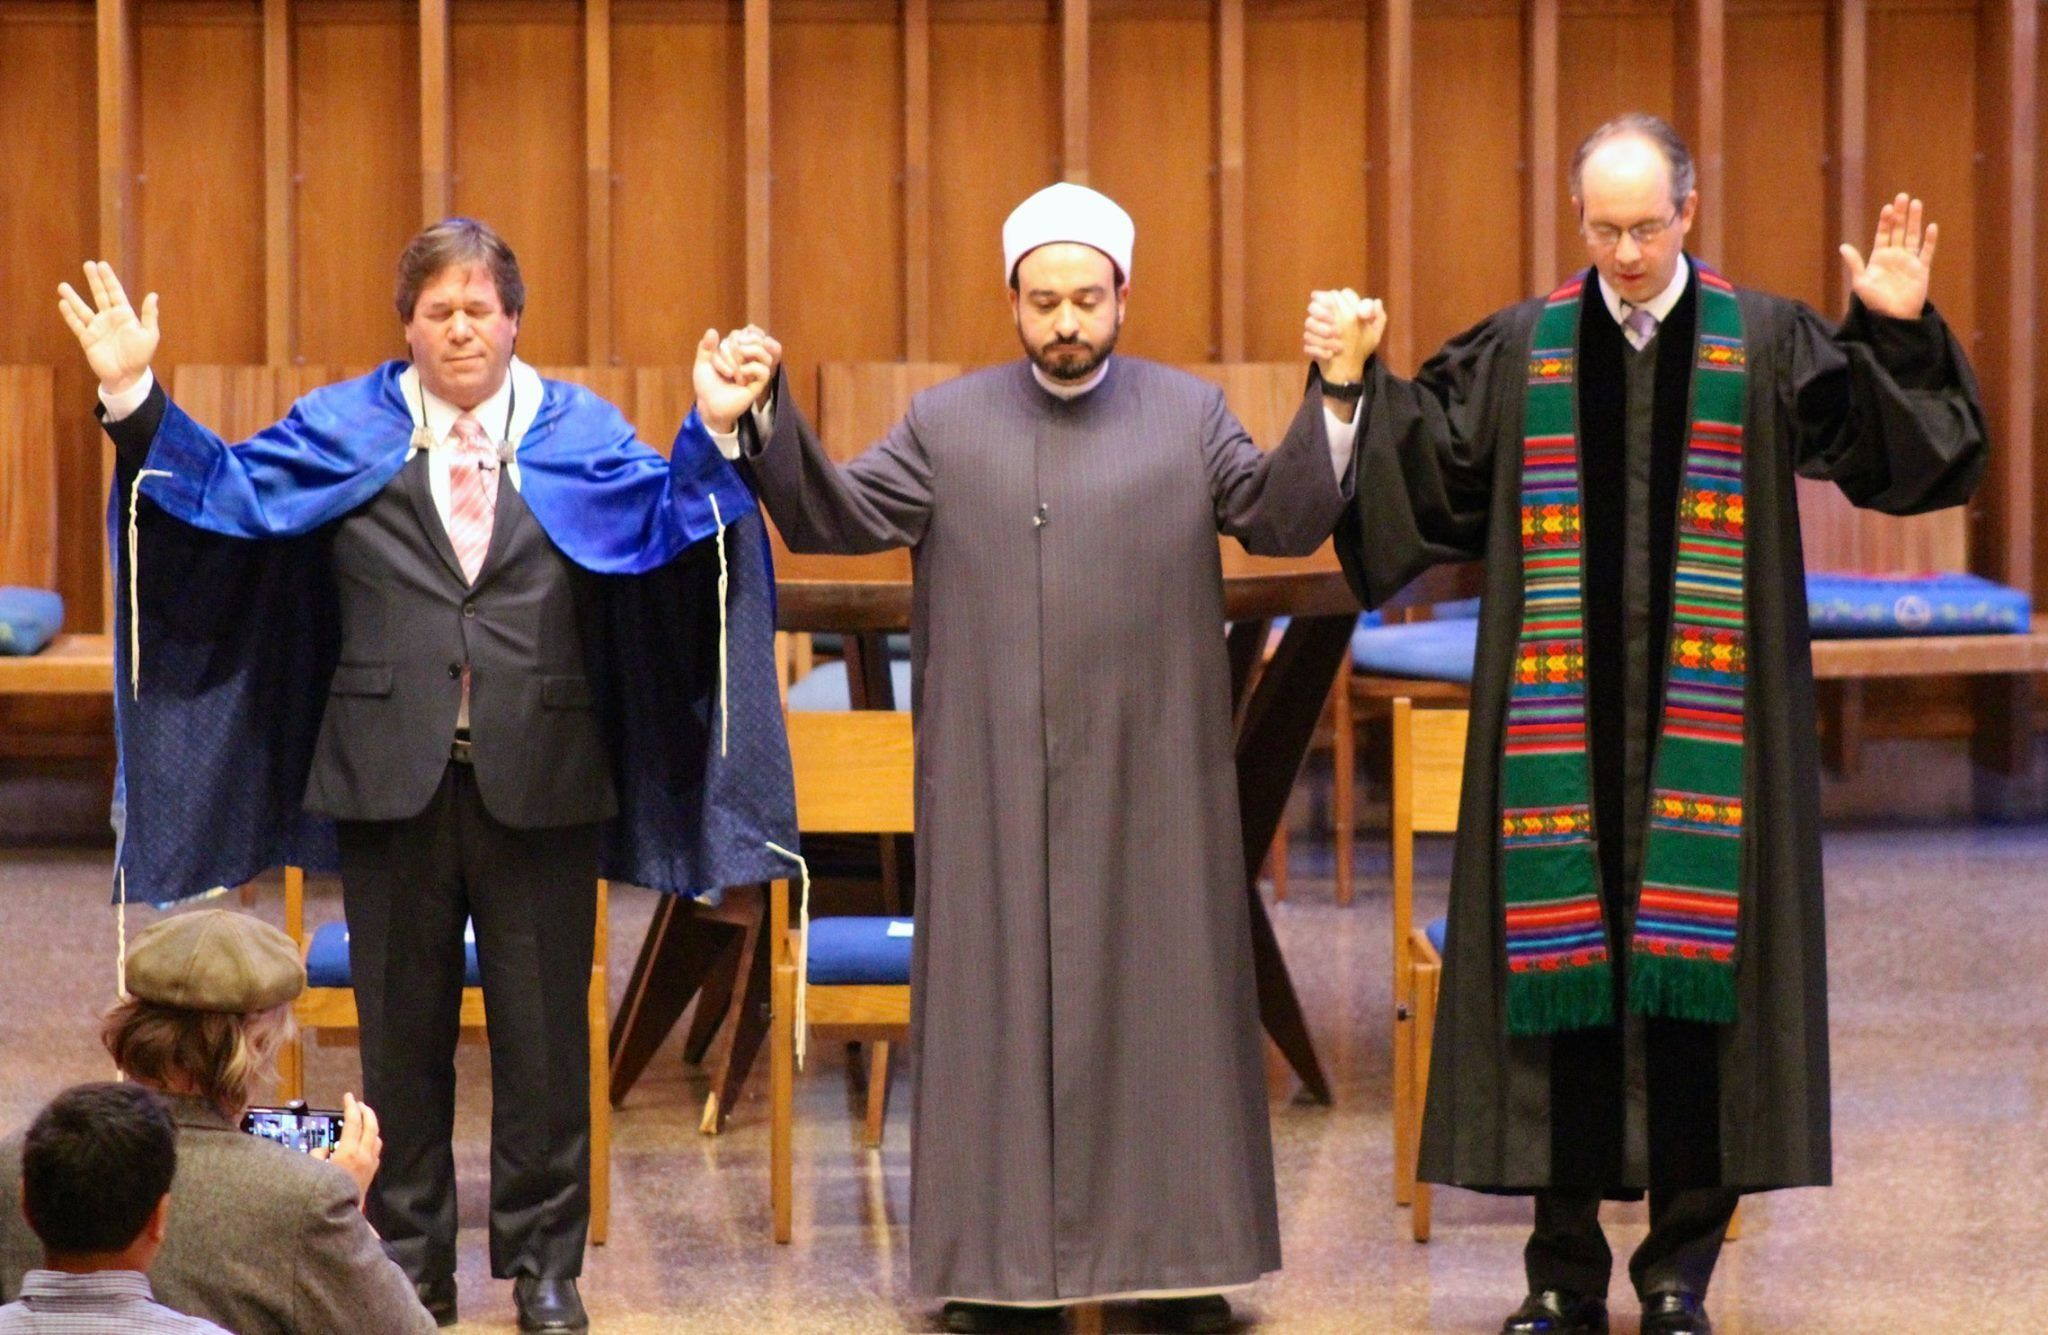 "<span class='image-component__caption' itemprop=""caption"">Rabbi Schnitzer, Dr. Tarek Elgawhary and Pastor David Gray pray together during an interfaith service at Bradley Hills Presbyterian Church in Bethesda, Maryland.</span>"